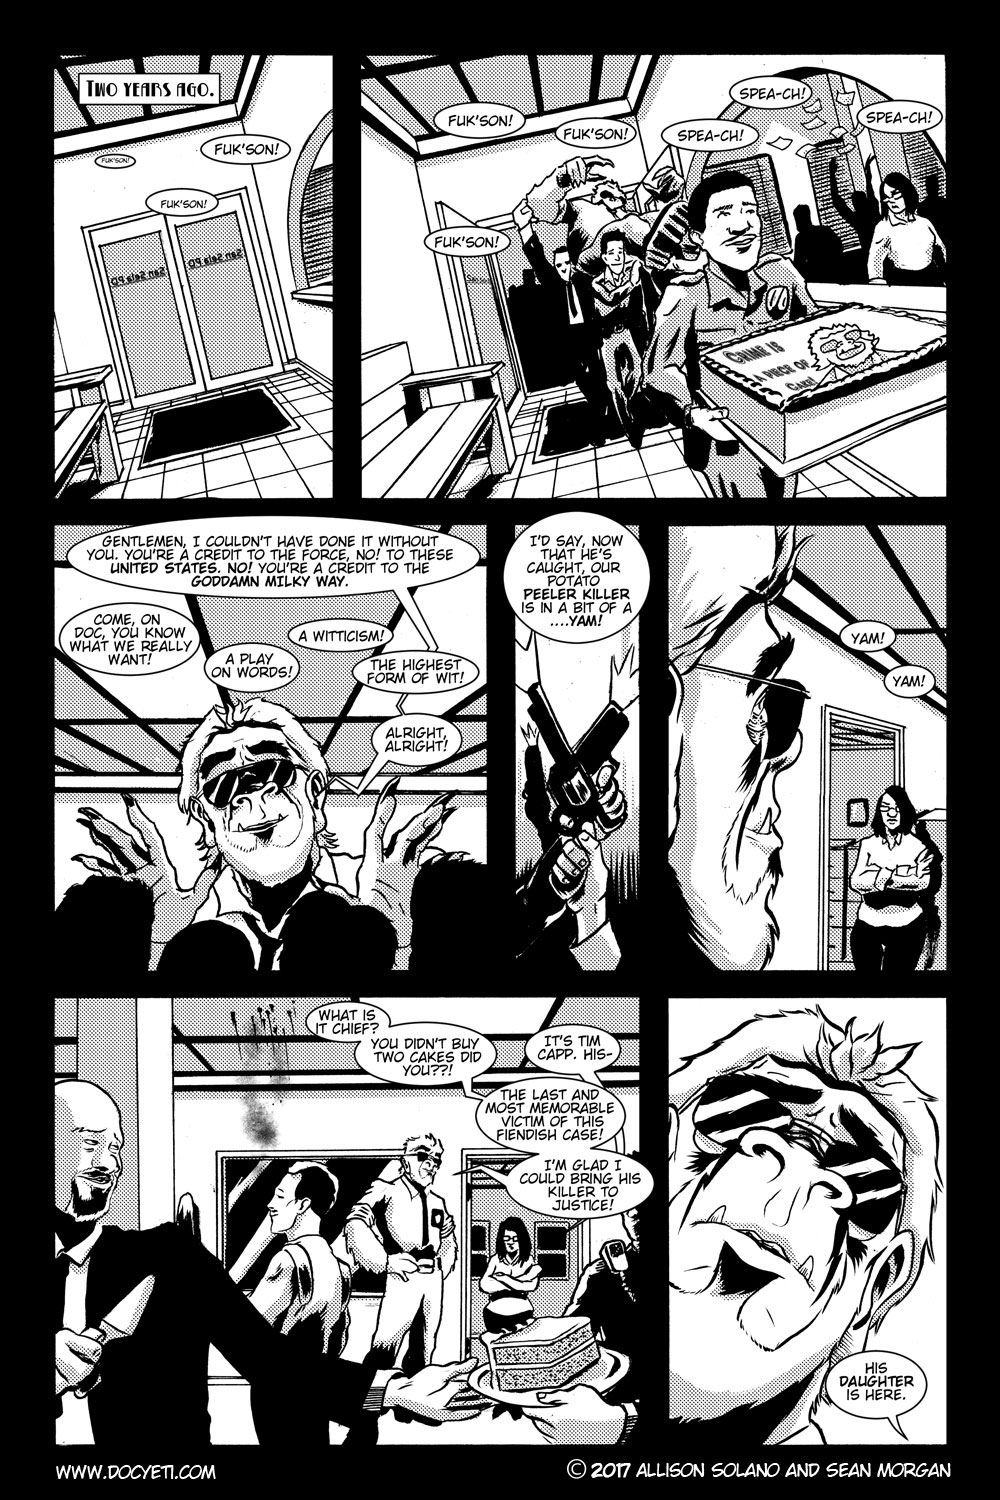 This Yeti for Hire! or the Yeti with the Lace Kerchief! Issue 2 pg.1